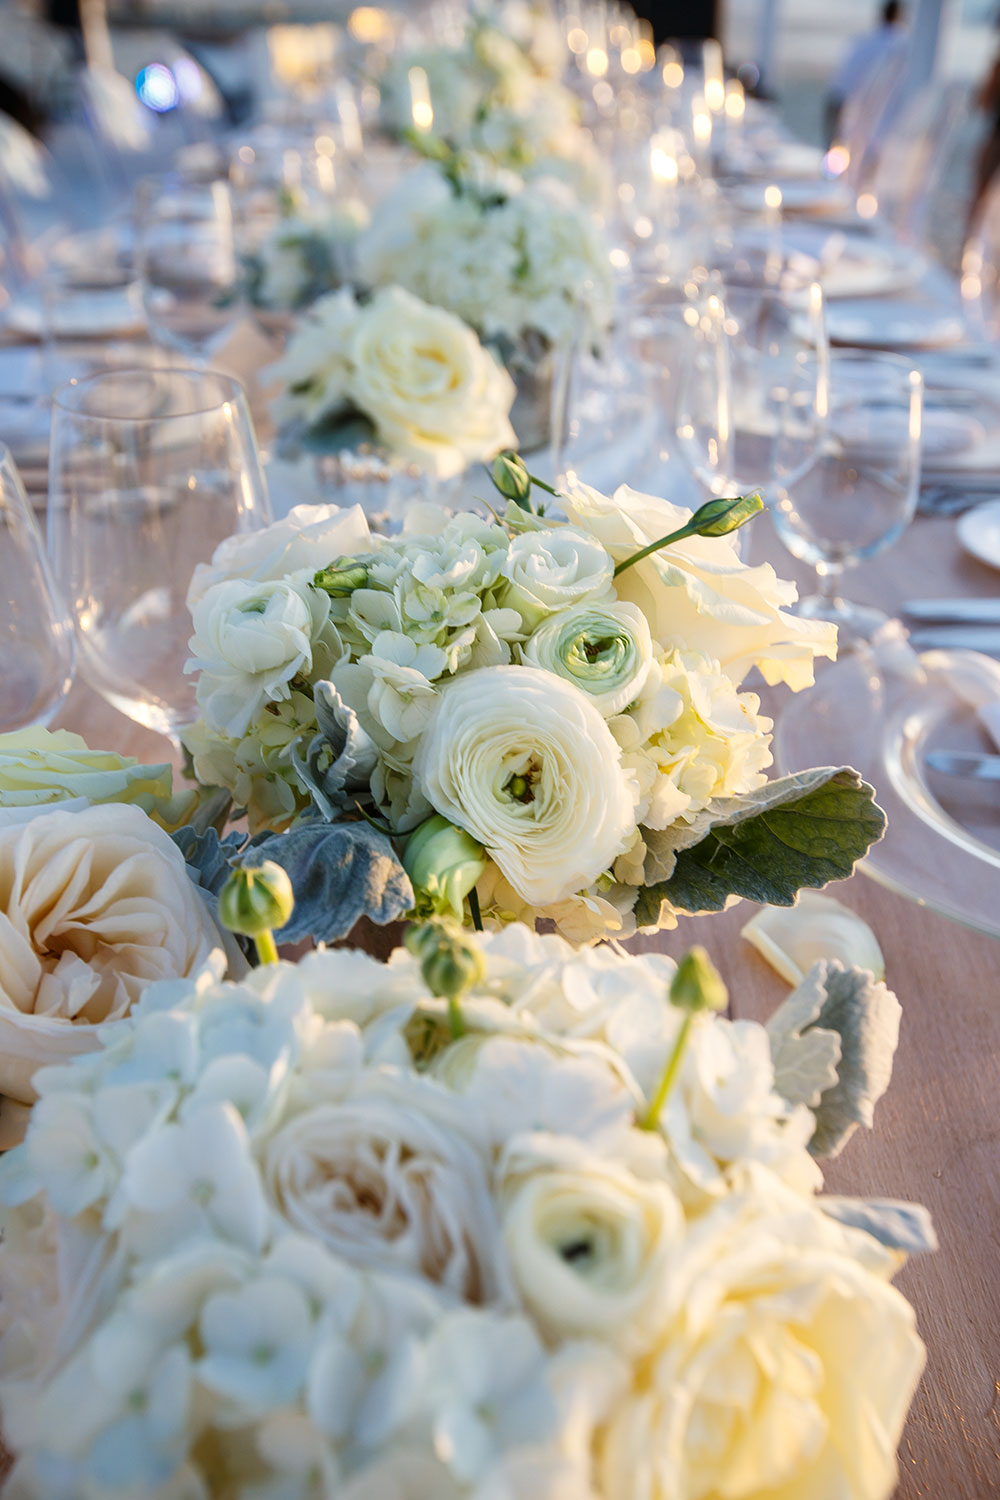 toast-flower-table-wedding-center-piece-stunning-10twelve.jpg